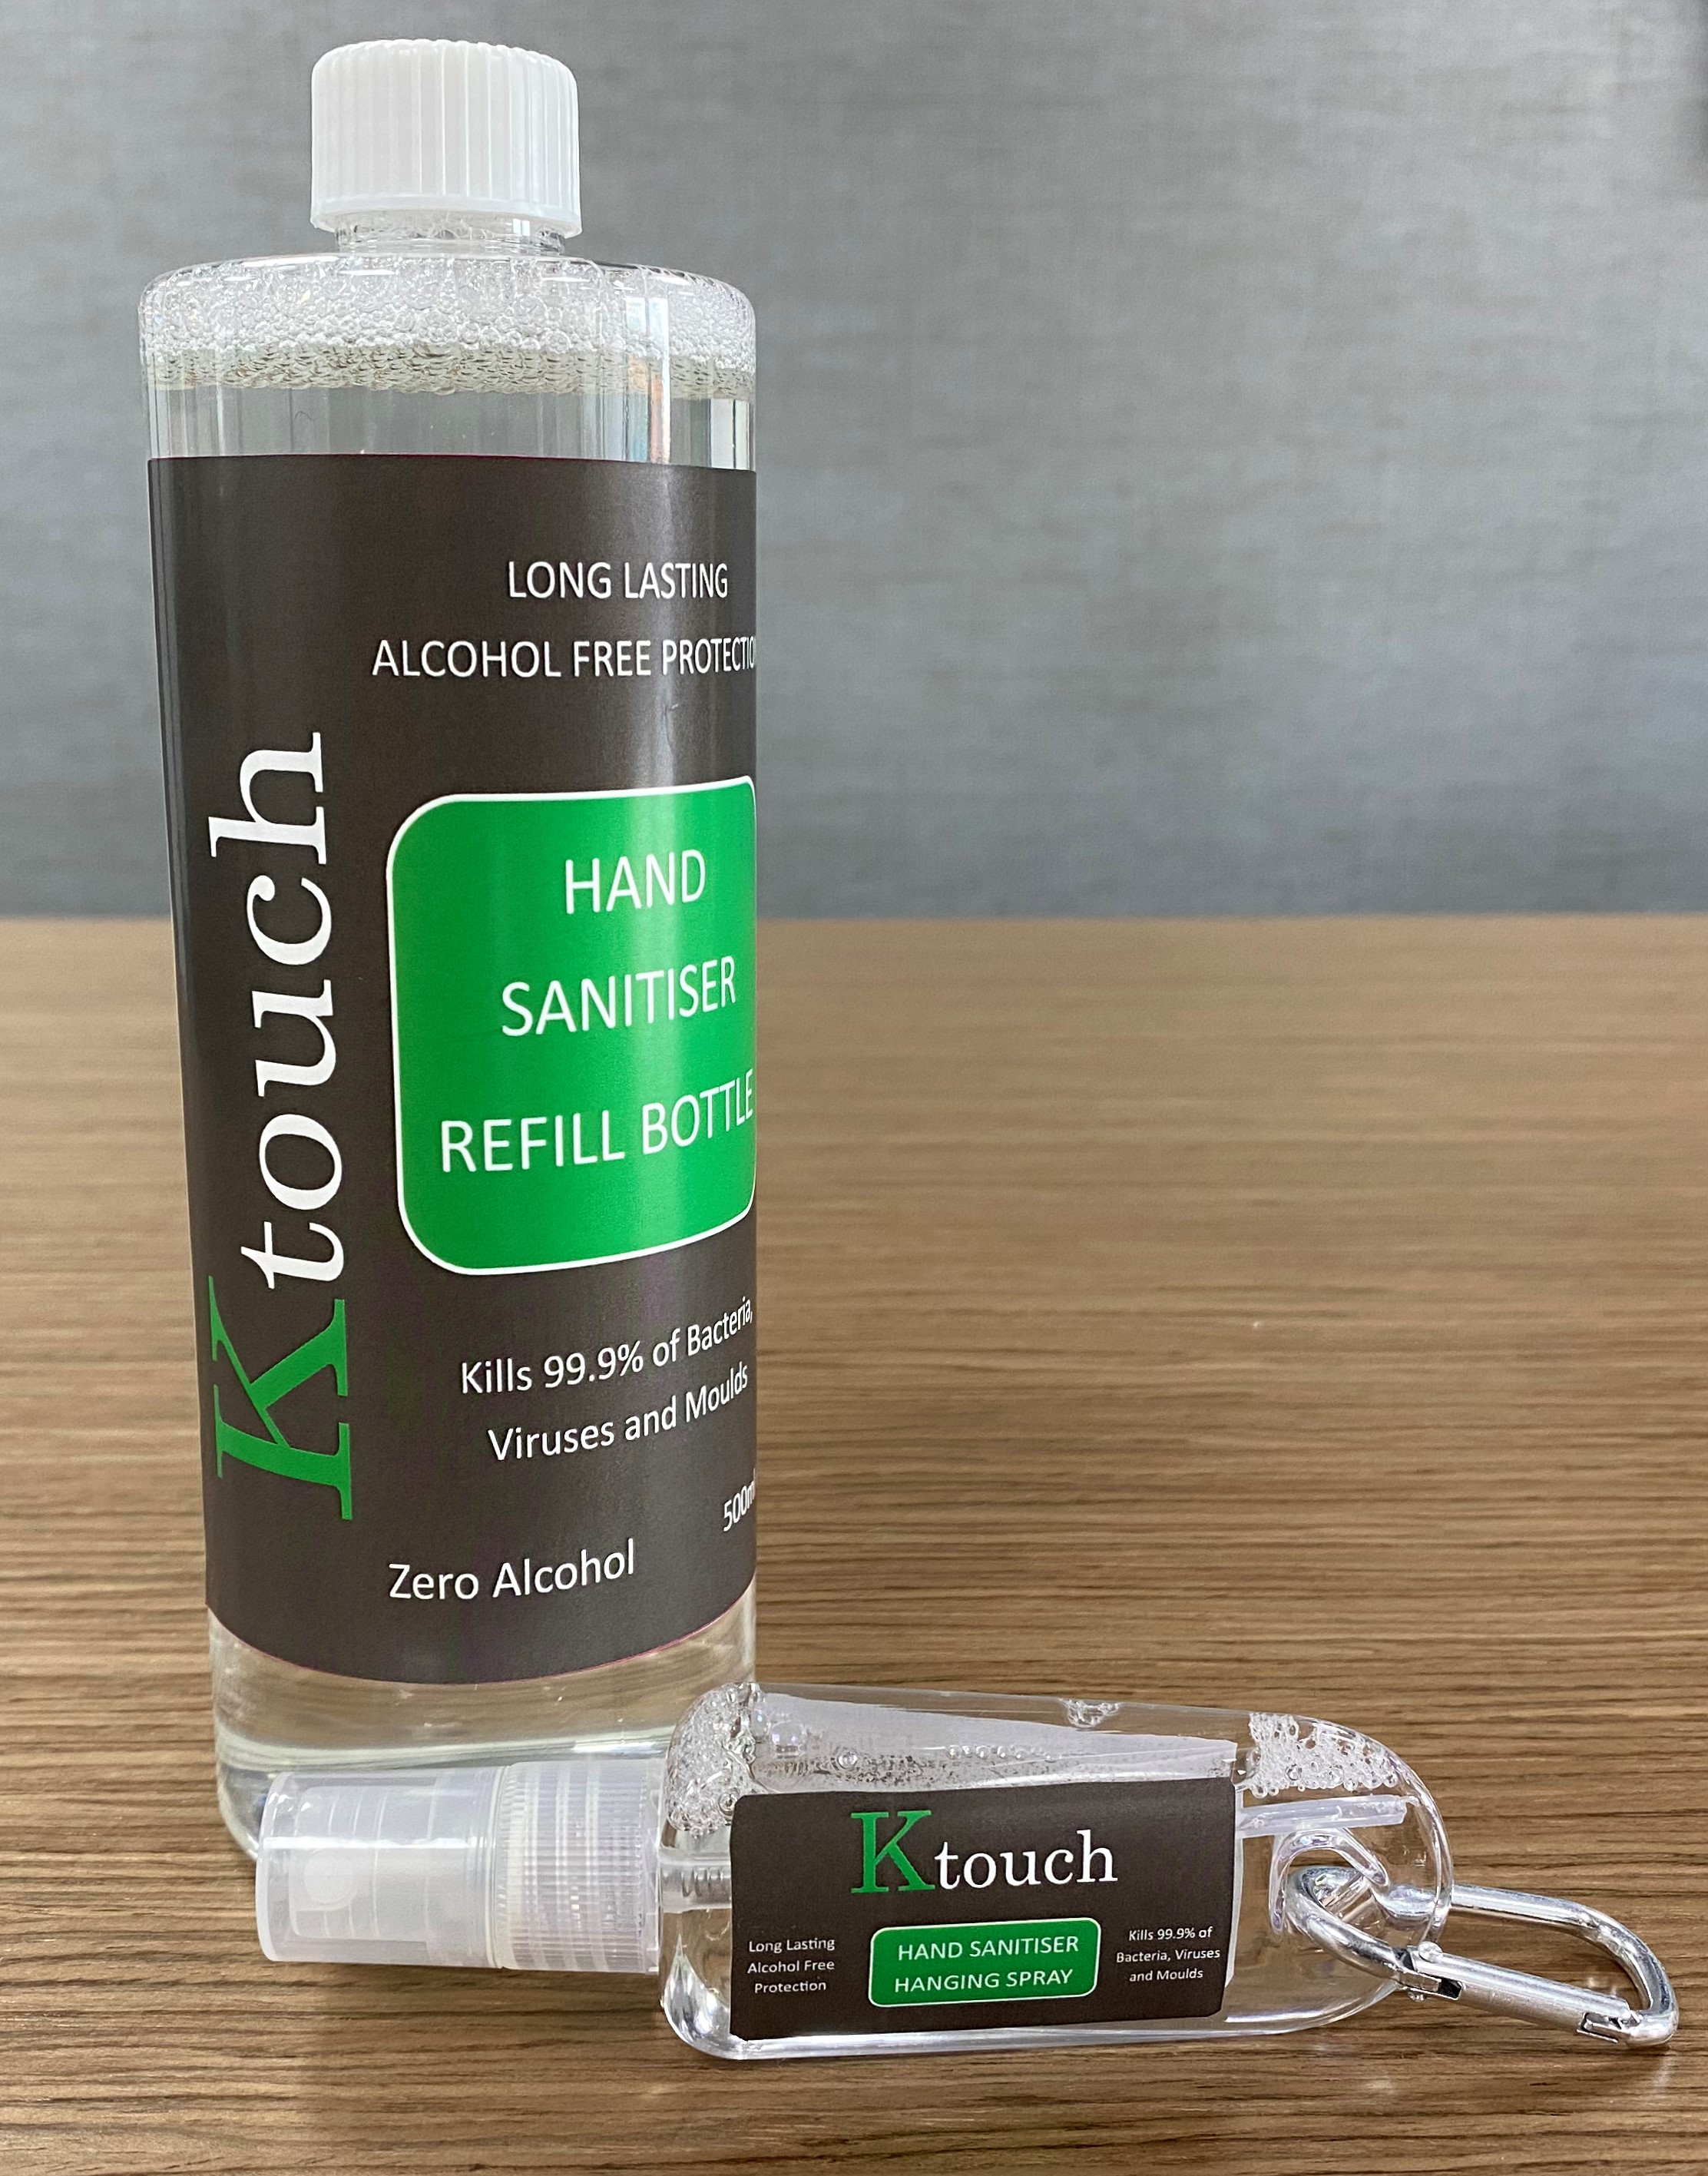 ktouch Hand Sanitiser Products